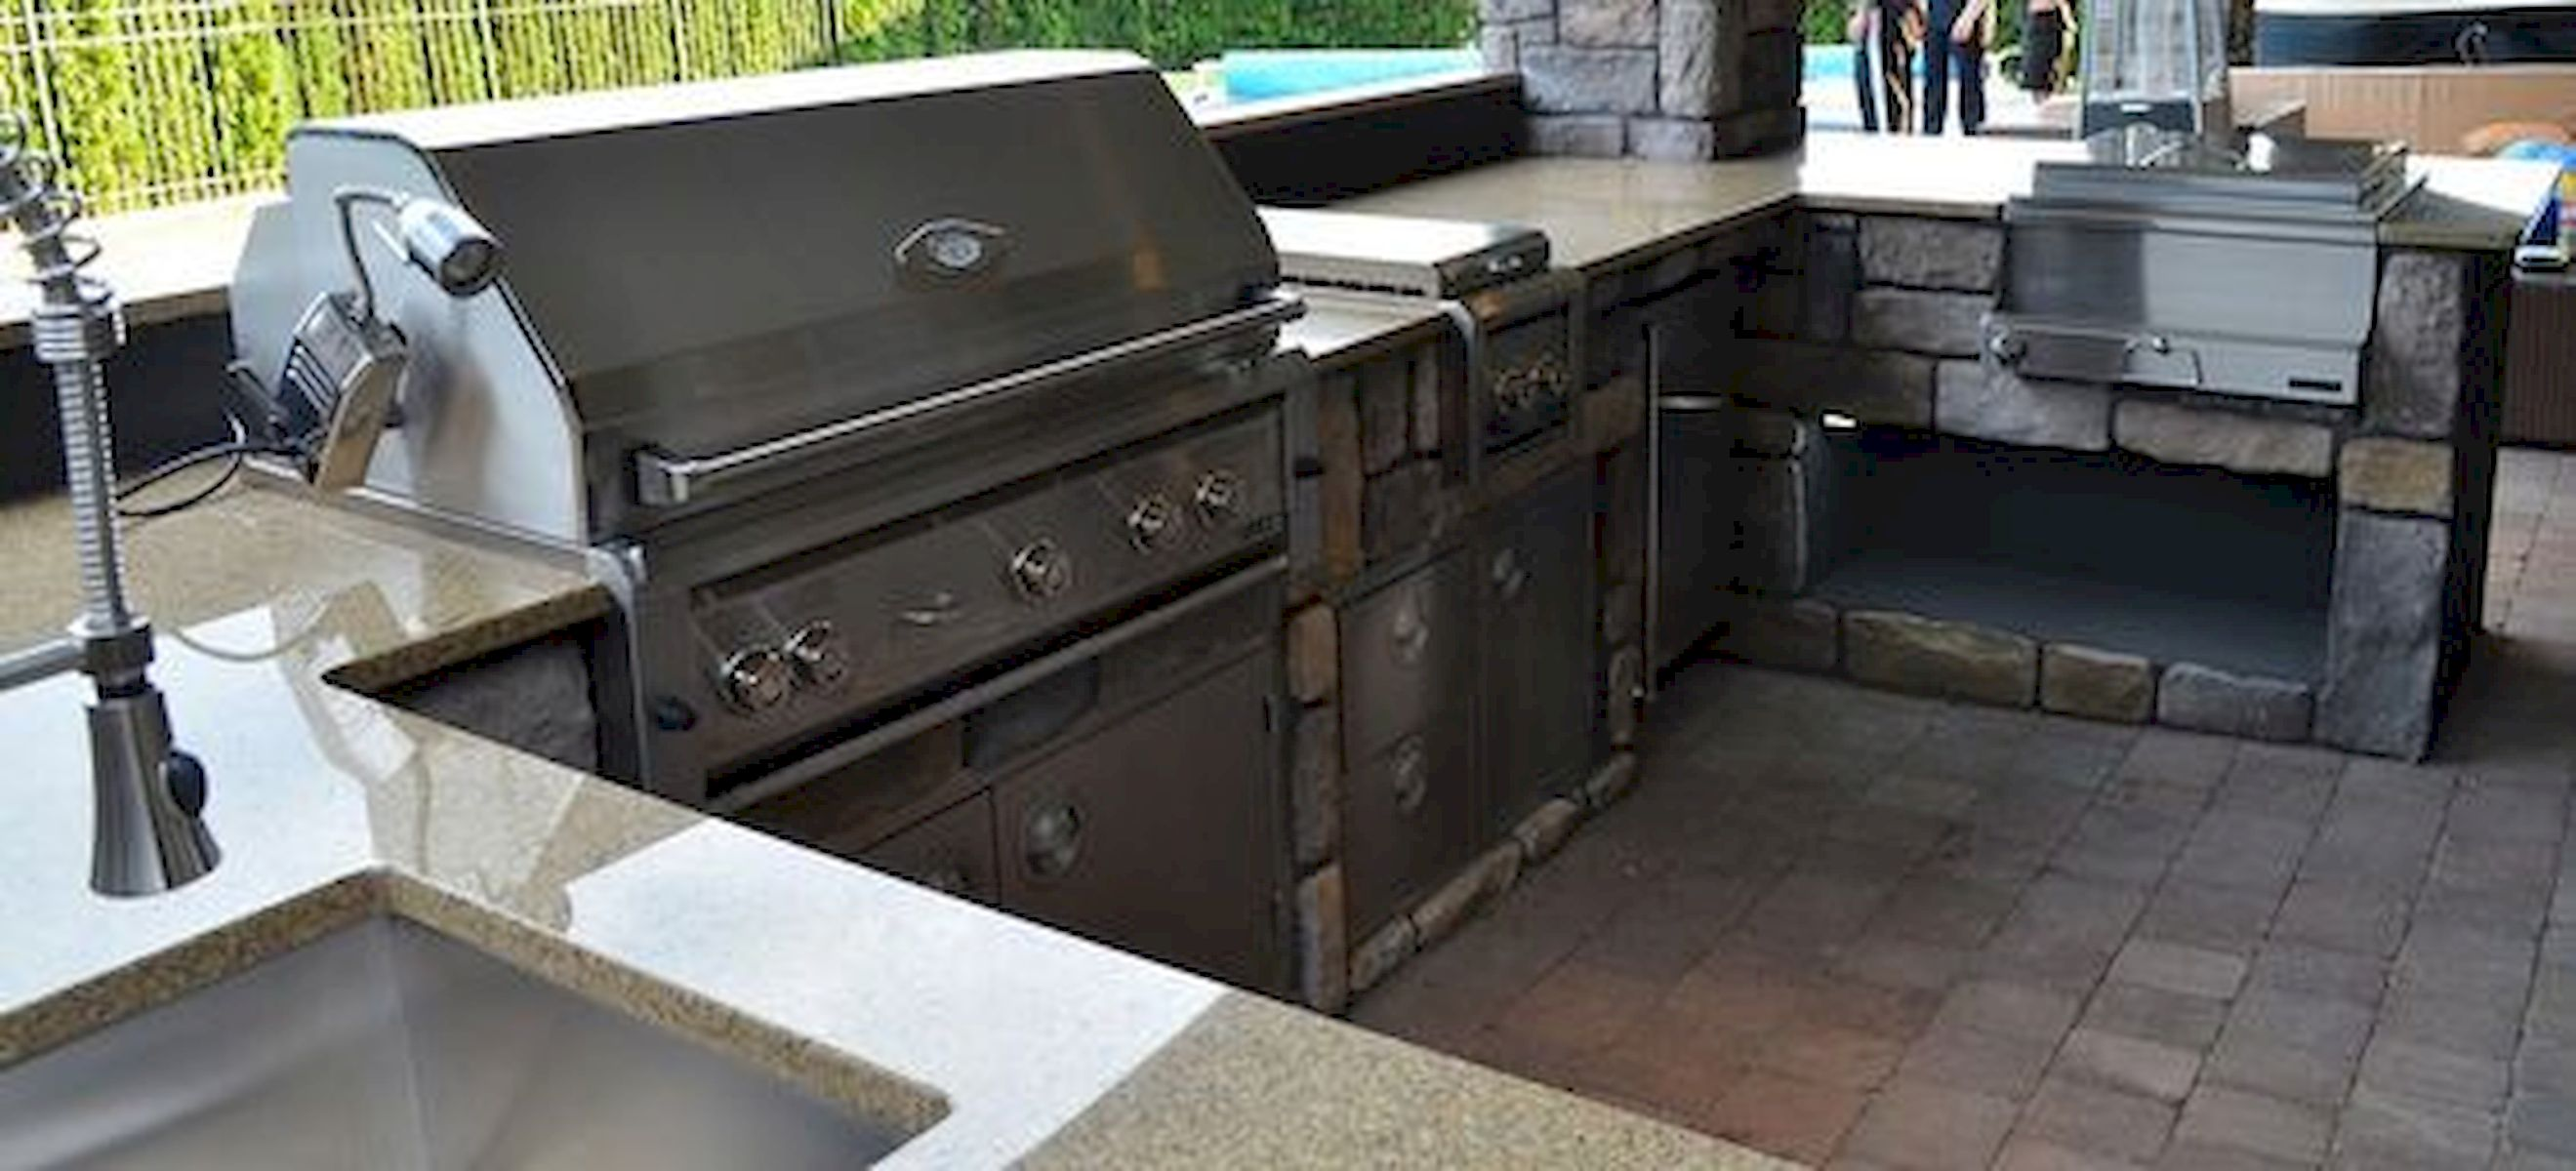 30 Fantastic Outdoor Kitchen Ideas And Design On A Budget (2)